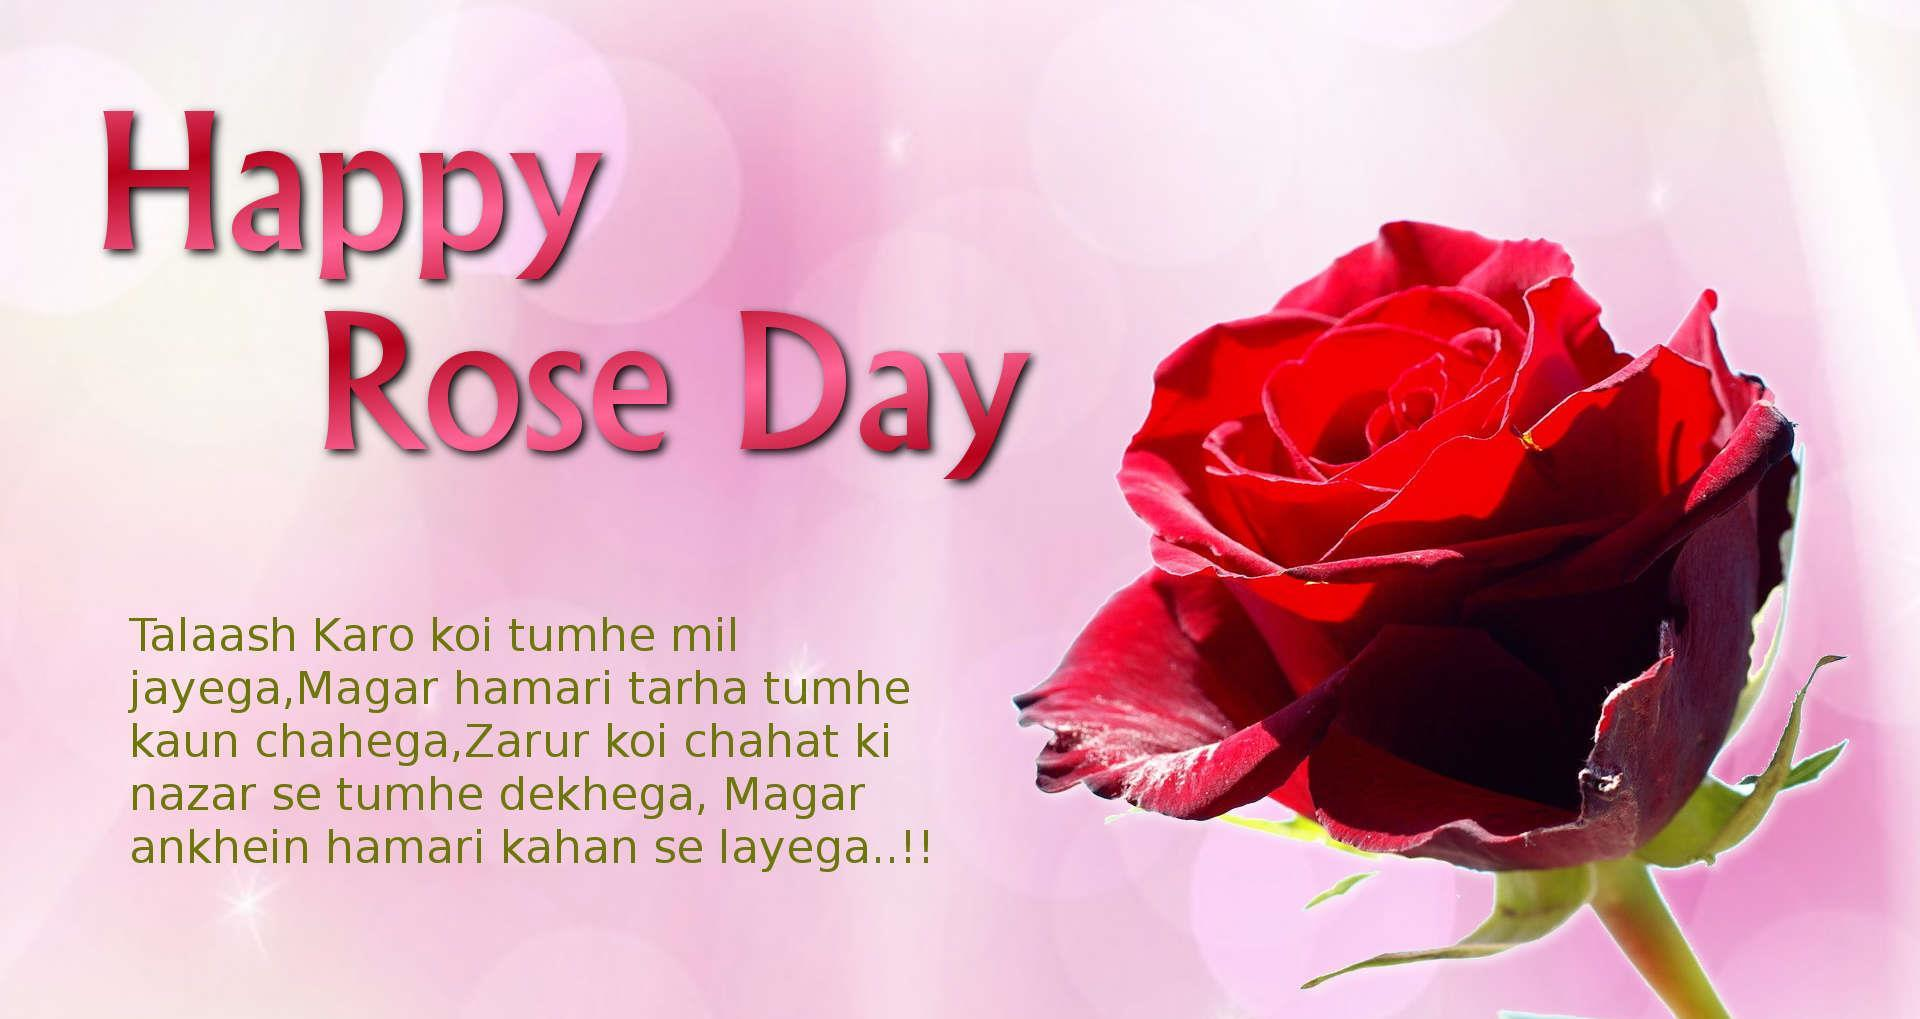 These Rose day images are so lovely and cute and you can even share these with your friends and family as love has no boundaries.